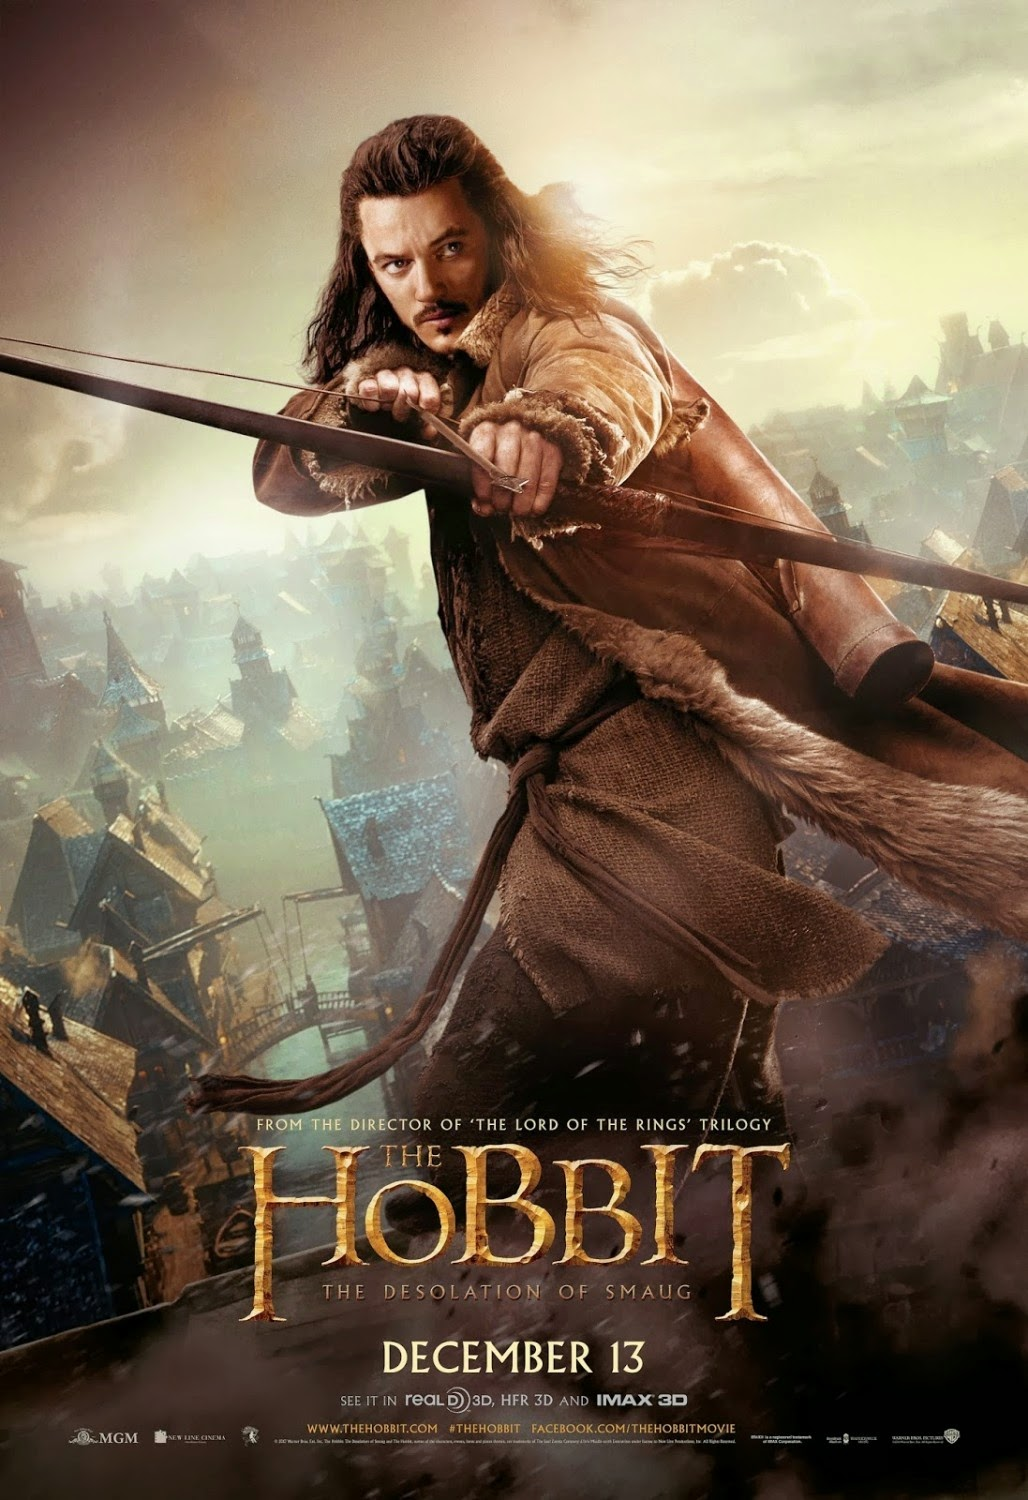 THE FINE ART DINER: Synopsis & Trailer Release: The Hobbit ...